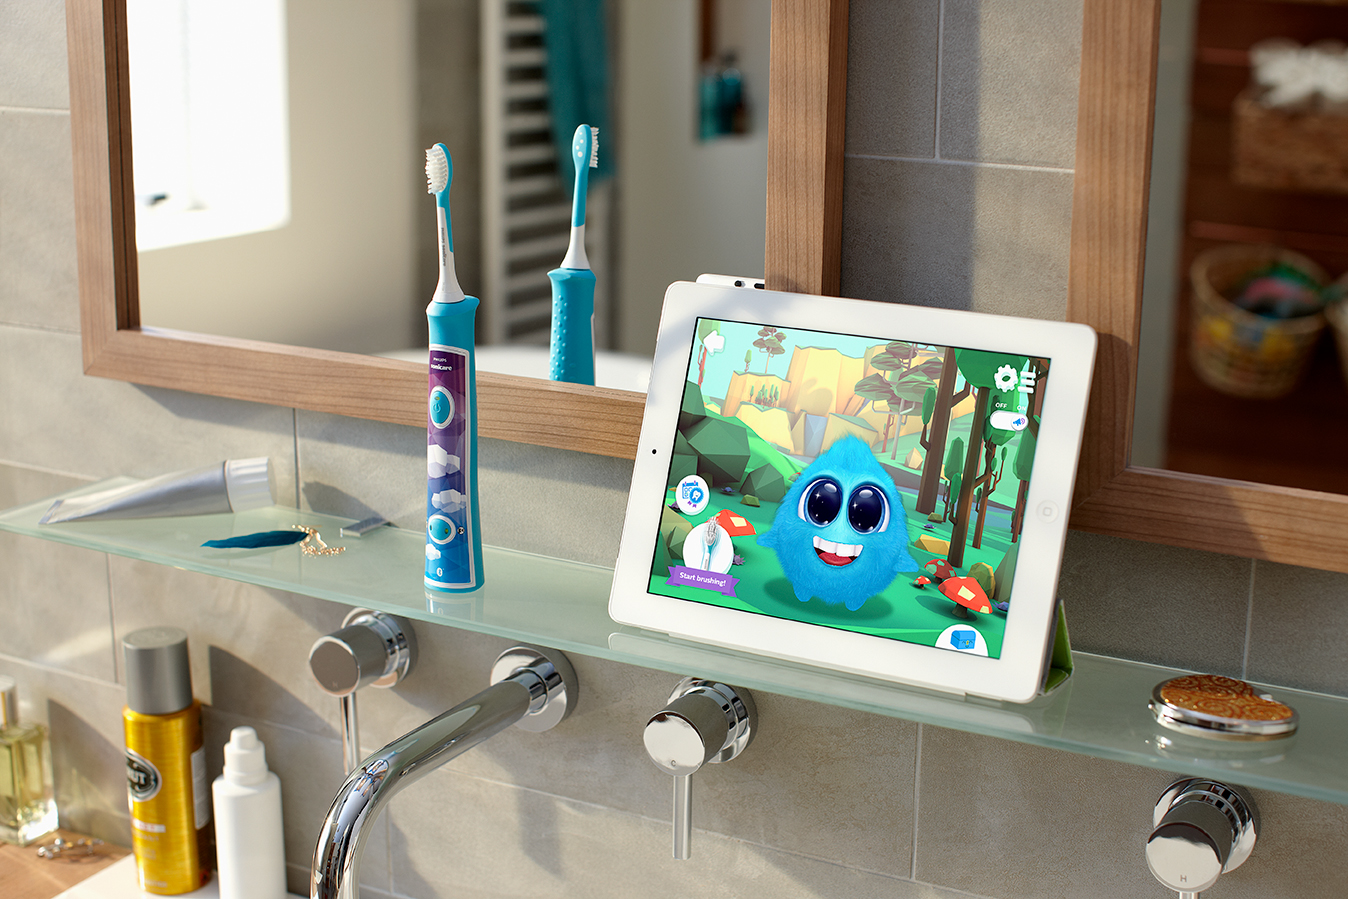 La nouvelle brosse à dents Sonicare For Kids facilite le brossage